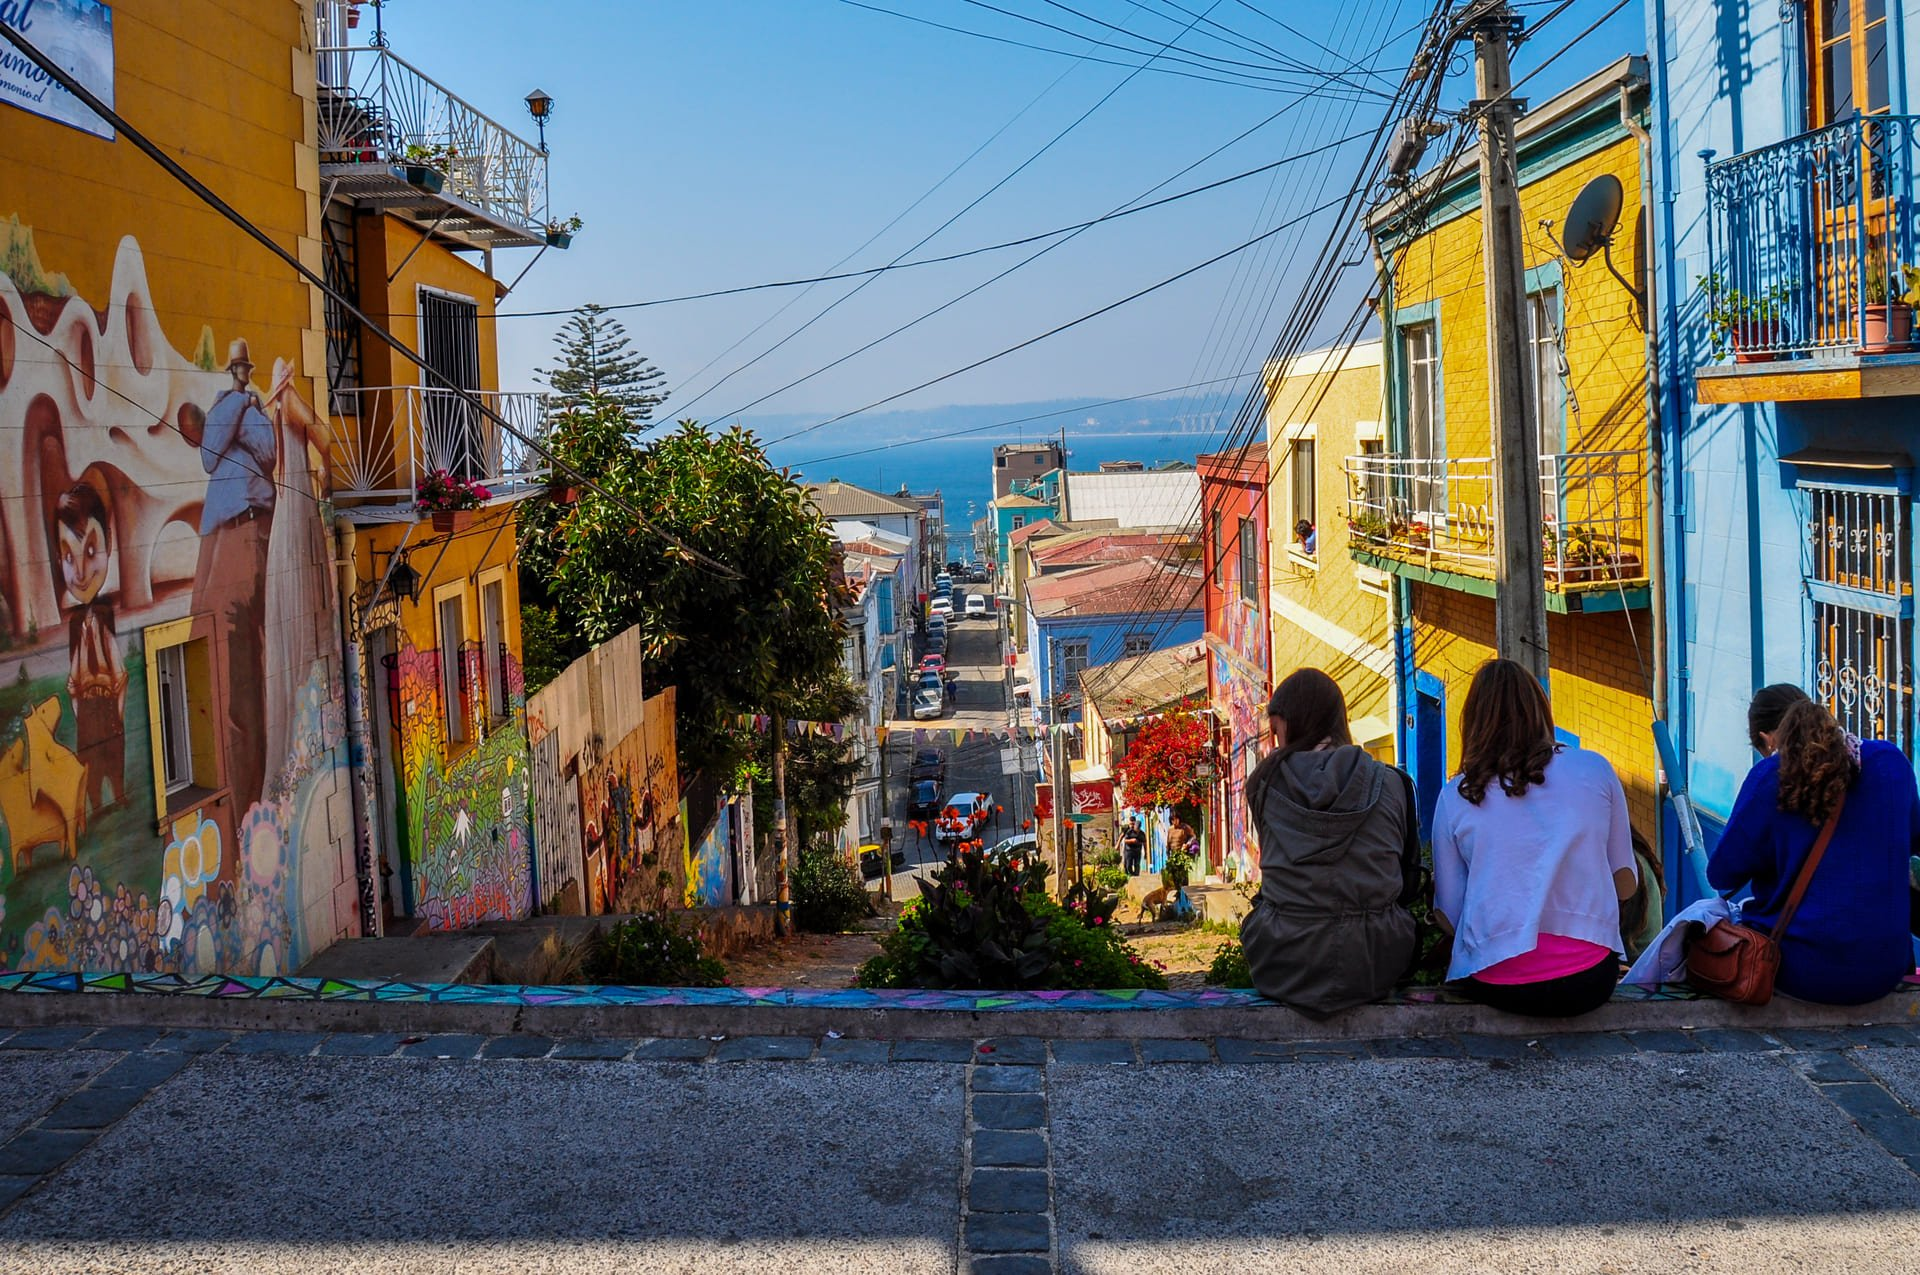 The Hills of Valparaiso in Chile